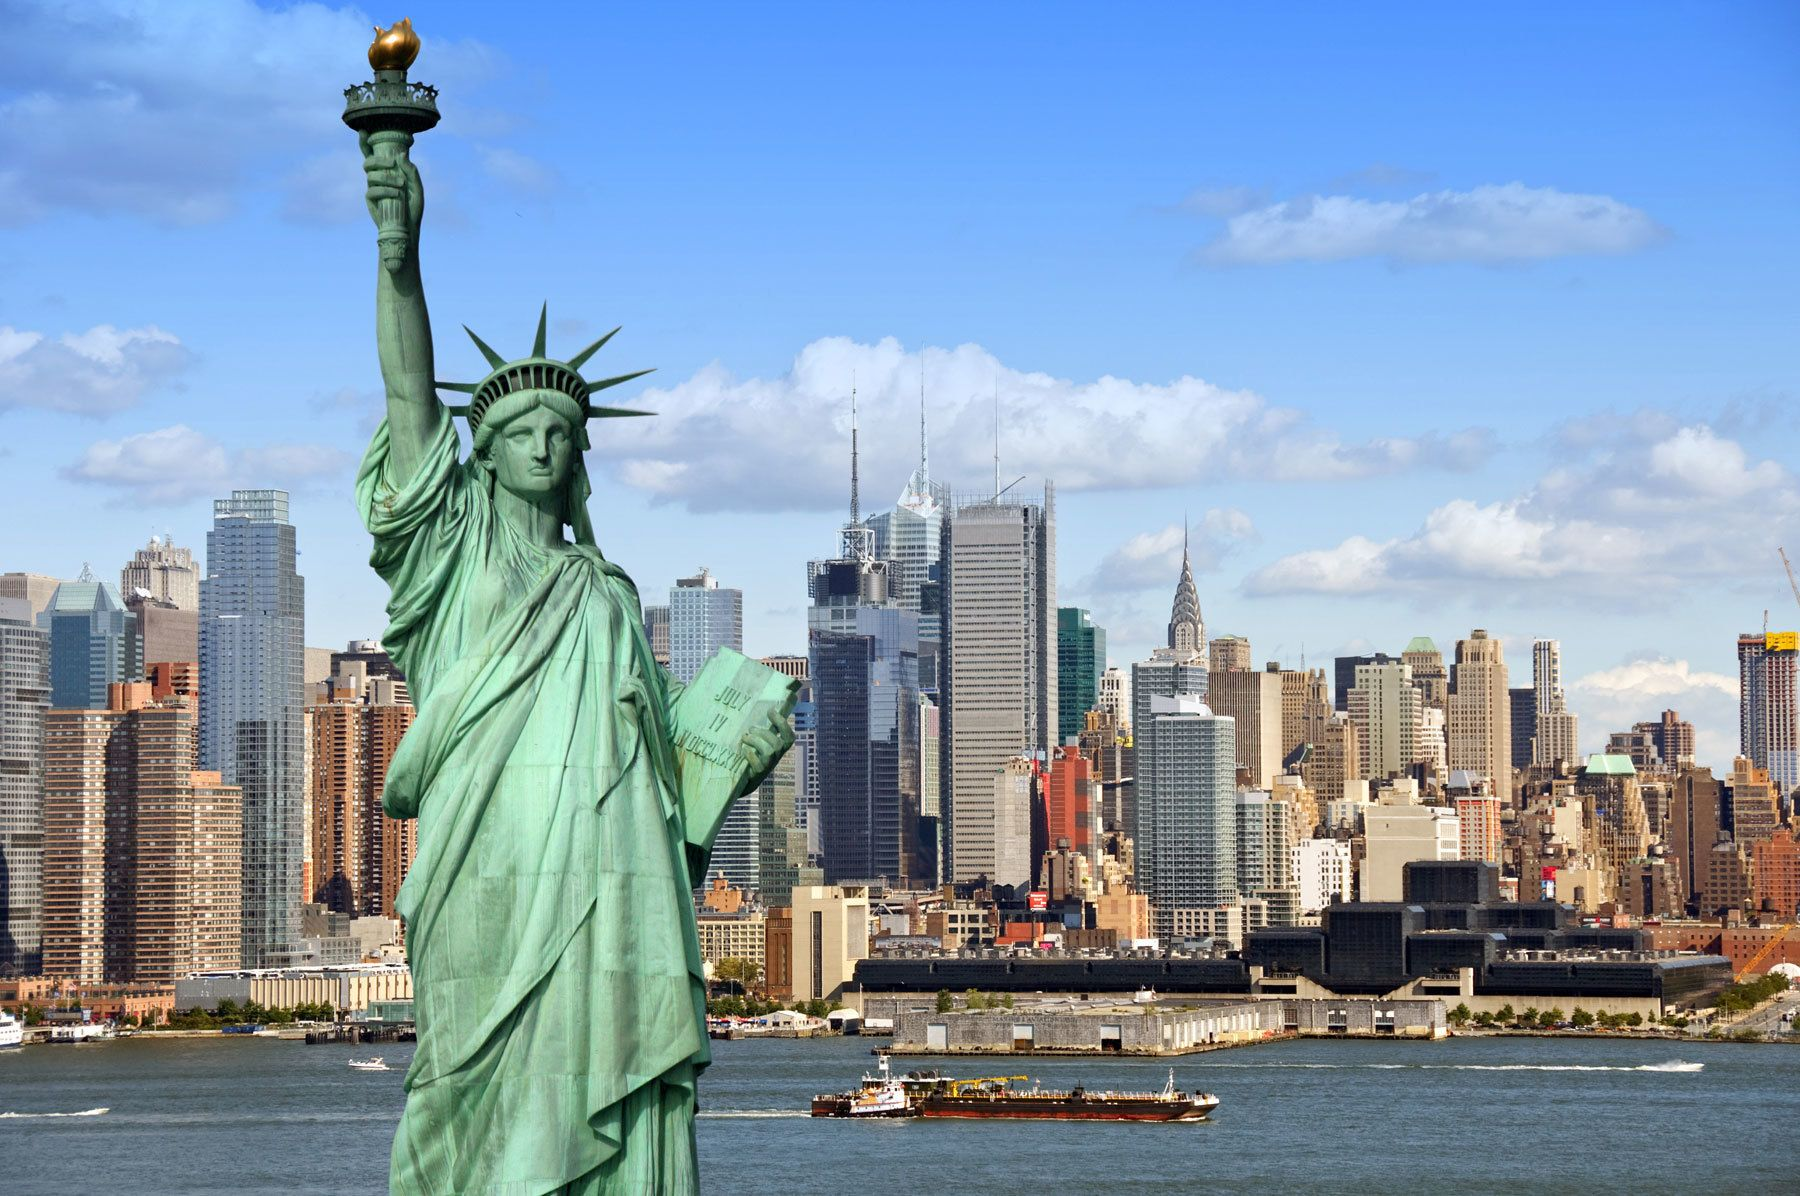 See 30 New York Sights (Walking Tour) & Statue Of Liberty